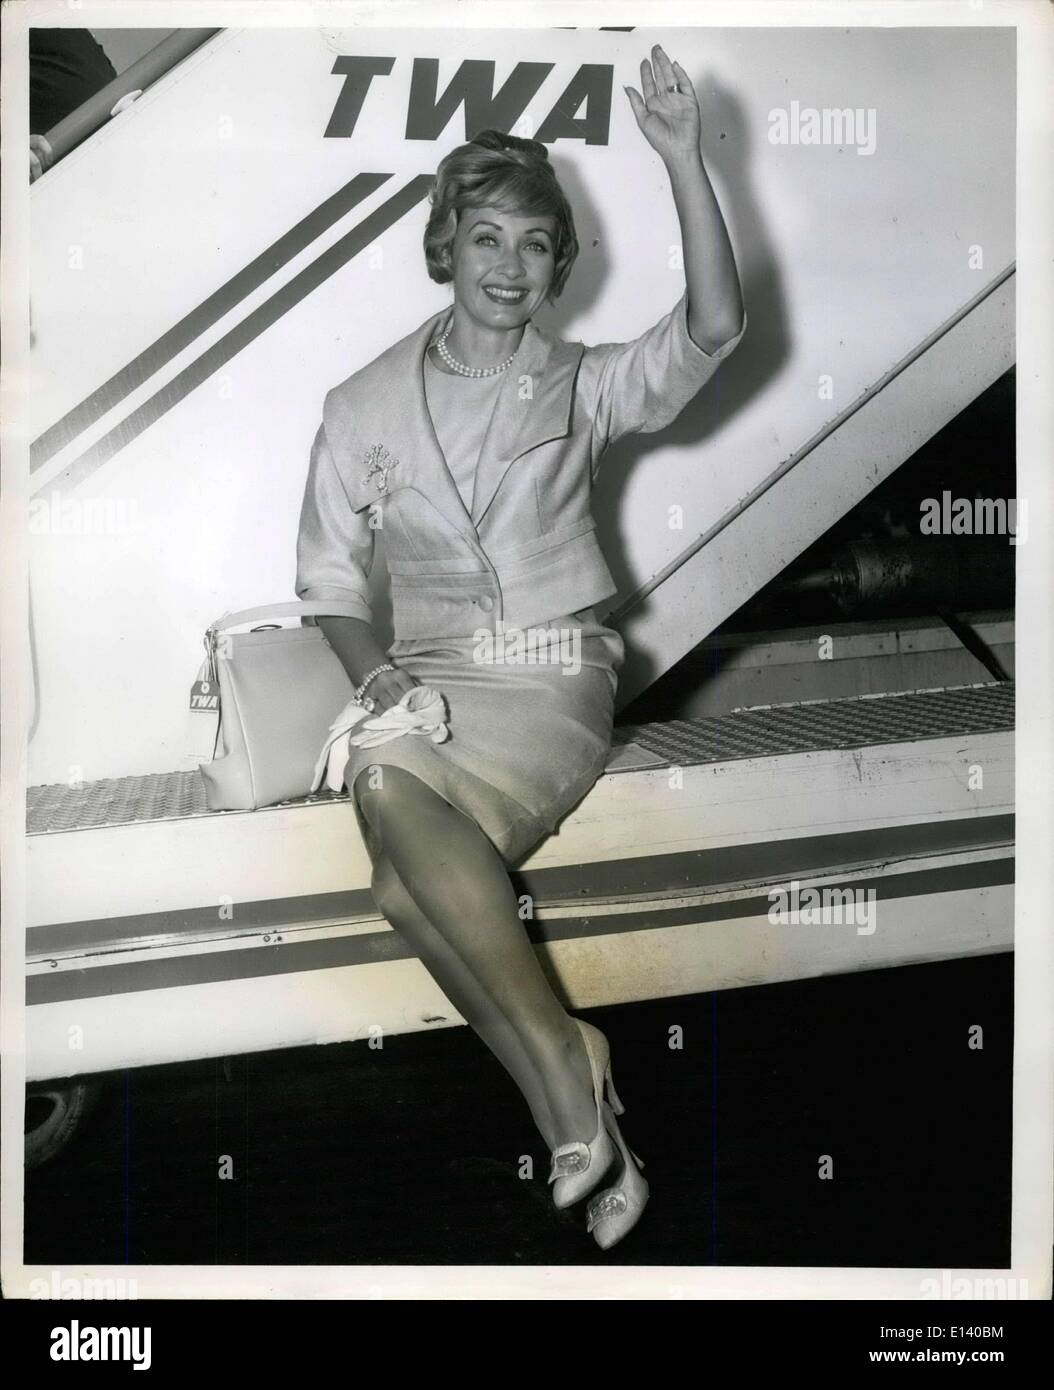 Mar. 31, 2012 - N.Y. International Airport, Sept. 26 -- Pert Jane Powell Delights the photographer Prior to jetting to los angeles via TWA. Miss Powell has been in town for five days for a TV Engagement. - Stock Image